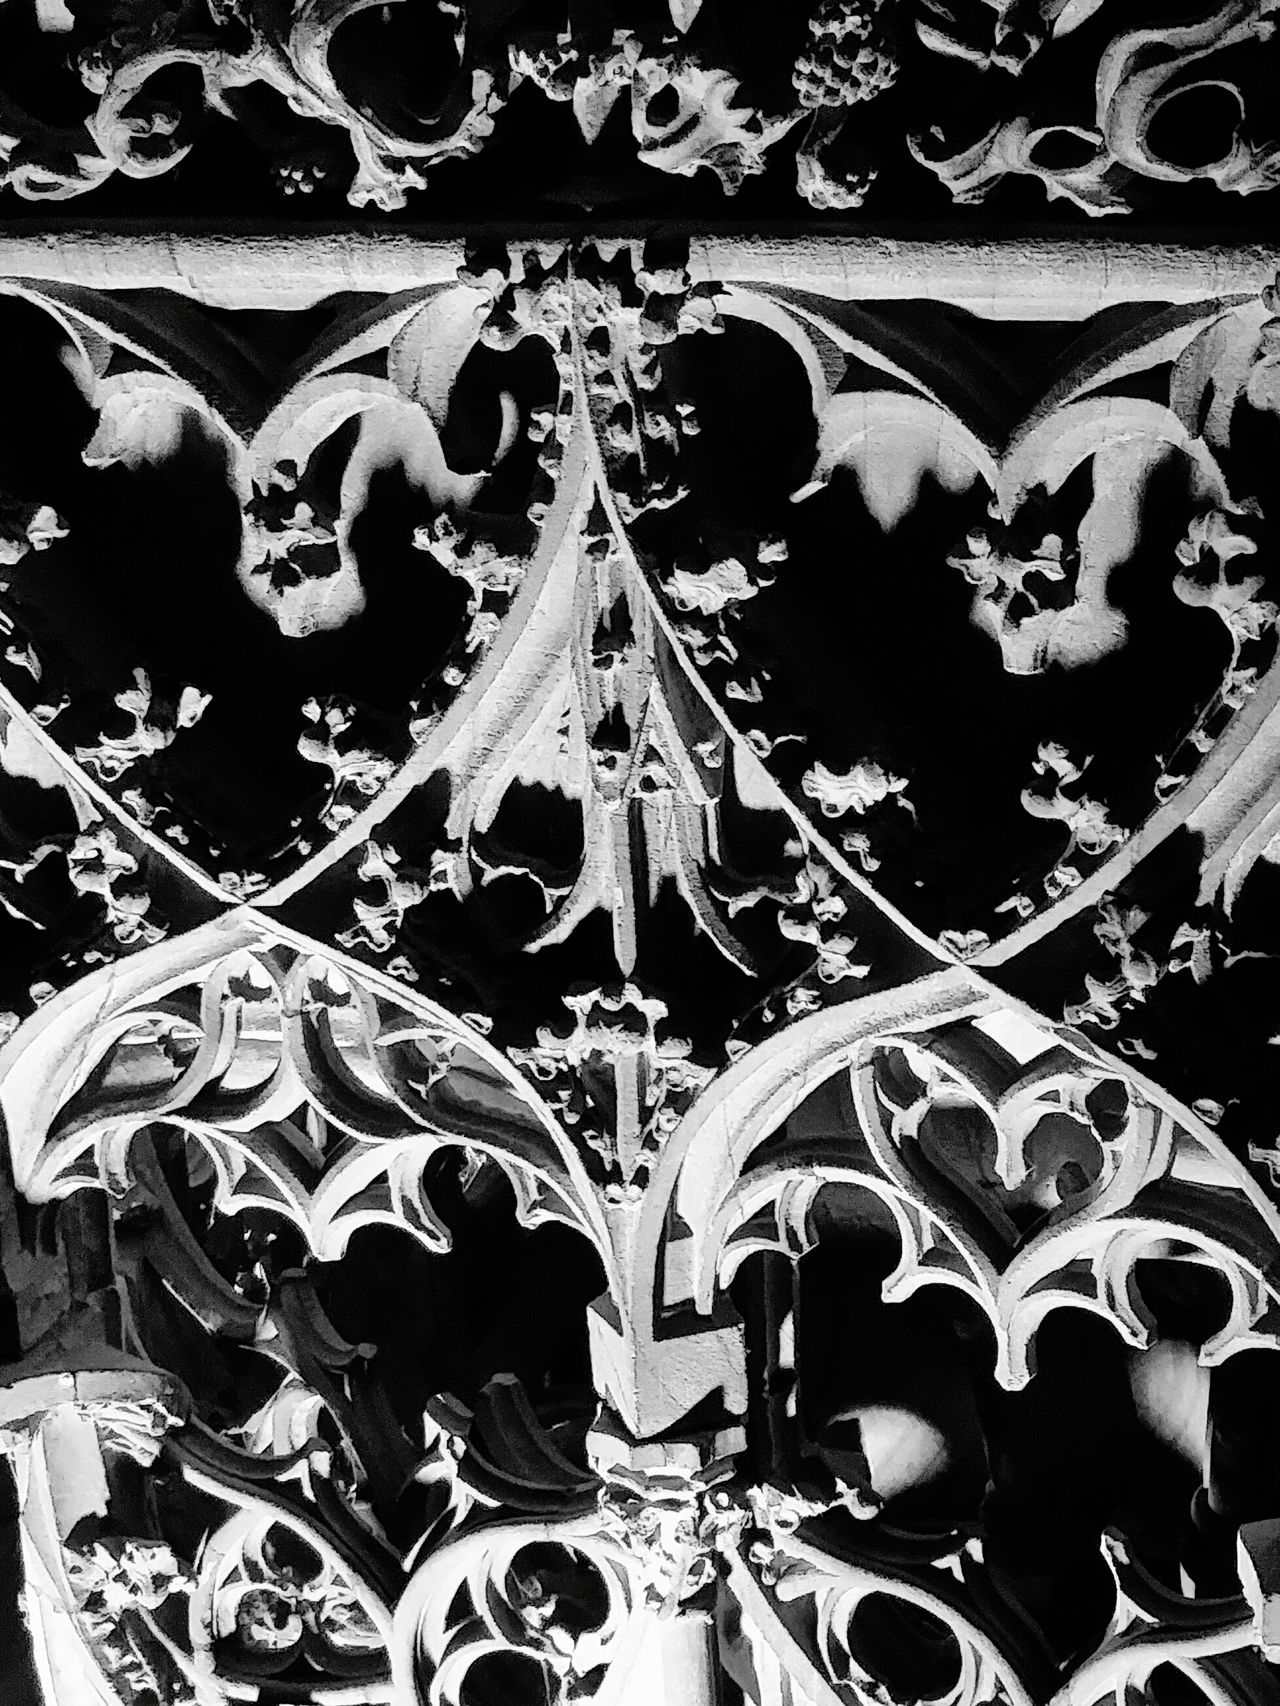 Strasbourg Cathedral Stonework ArtWork Light Shadows Church Altars Monochrome Photography TakeoverContrast